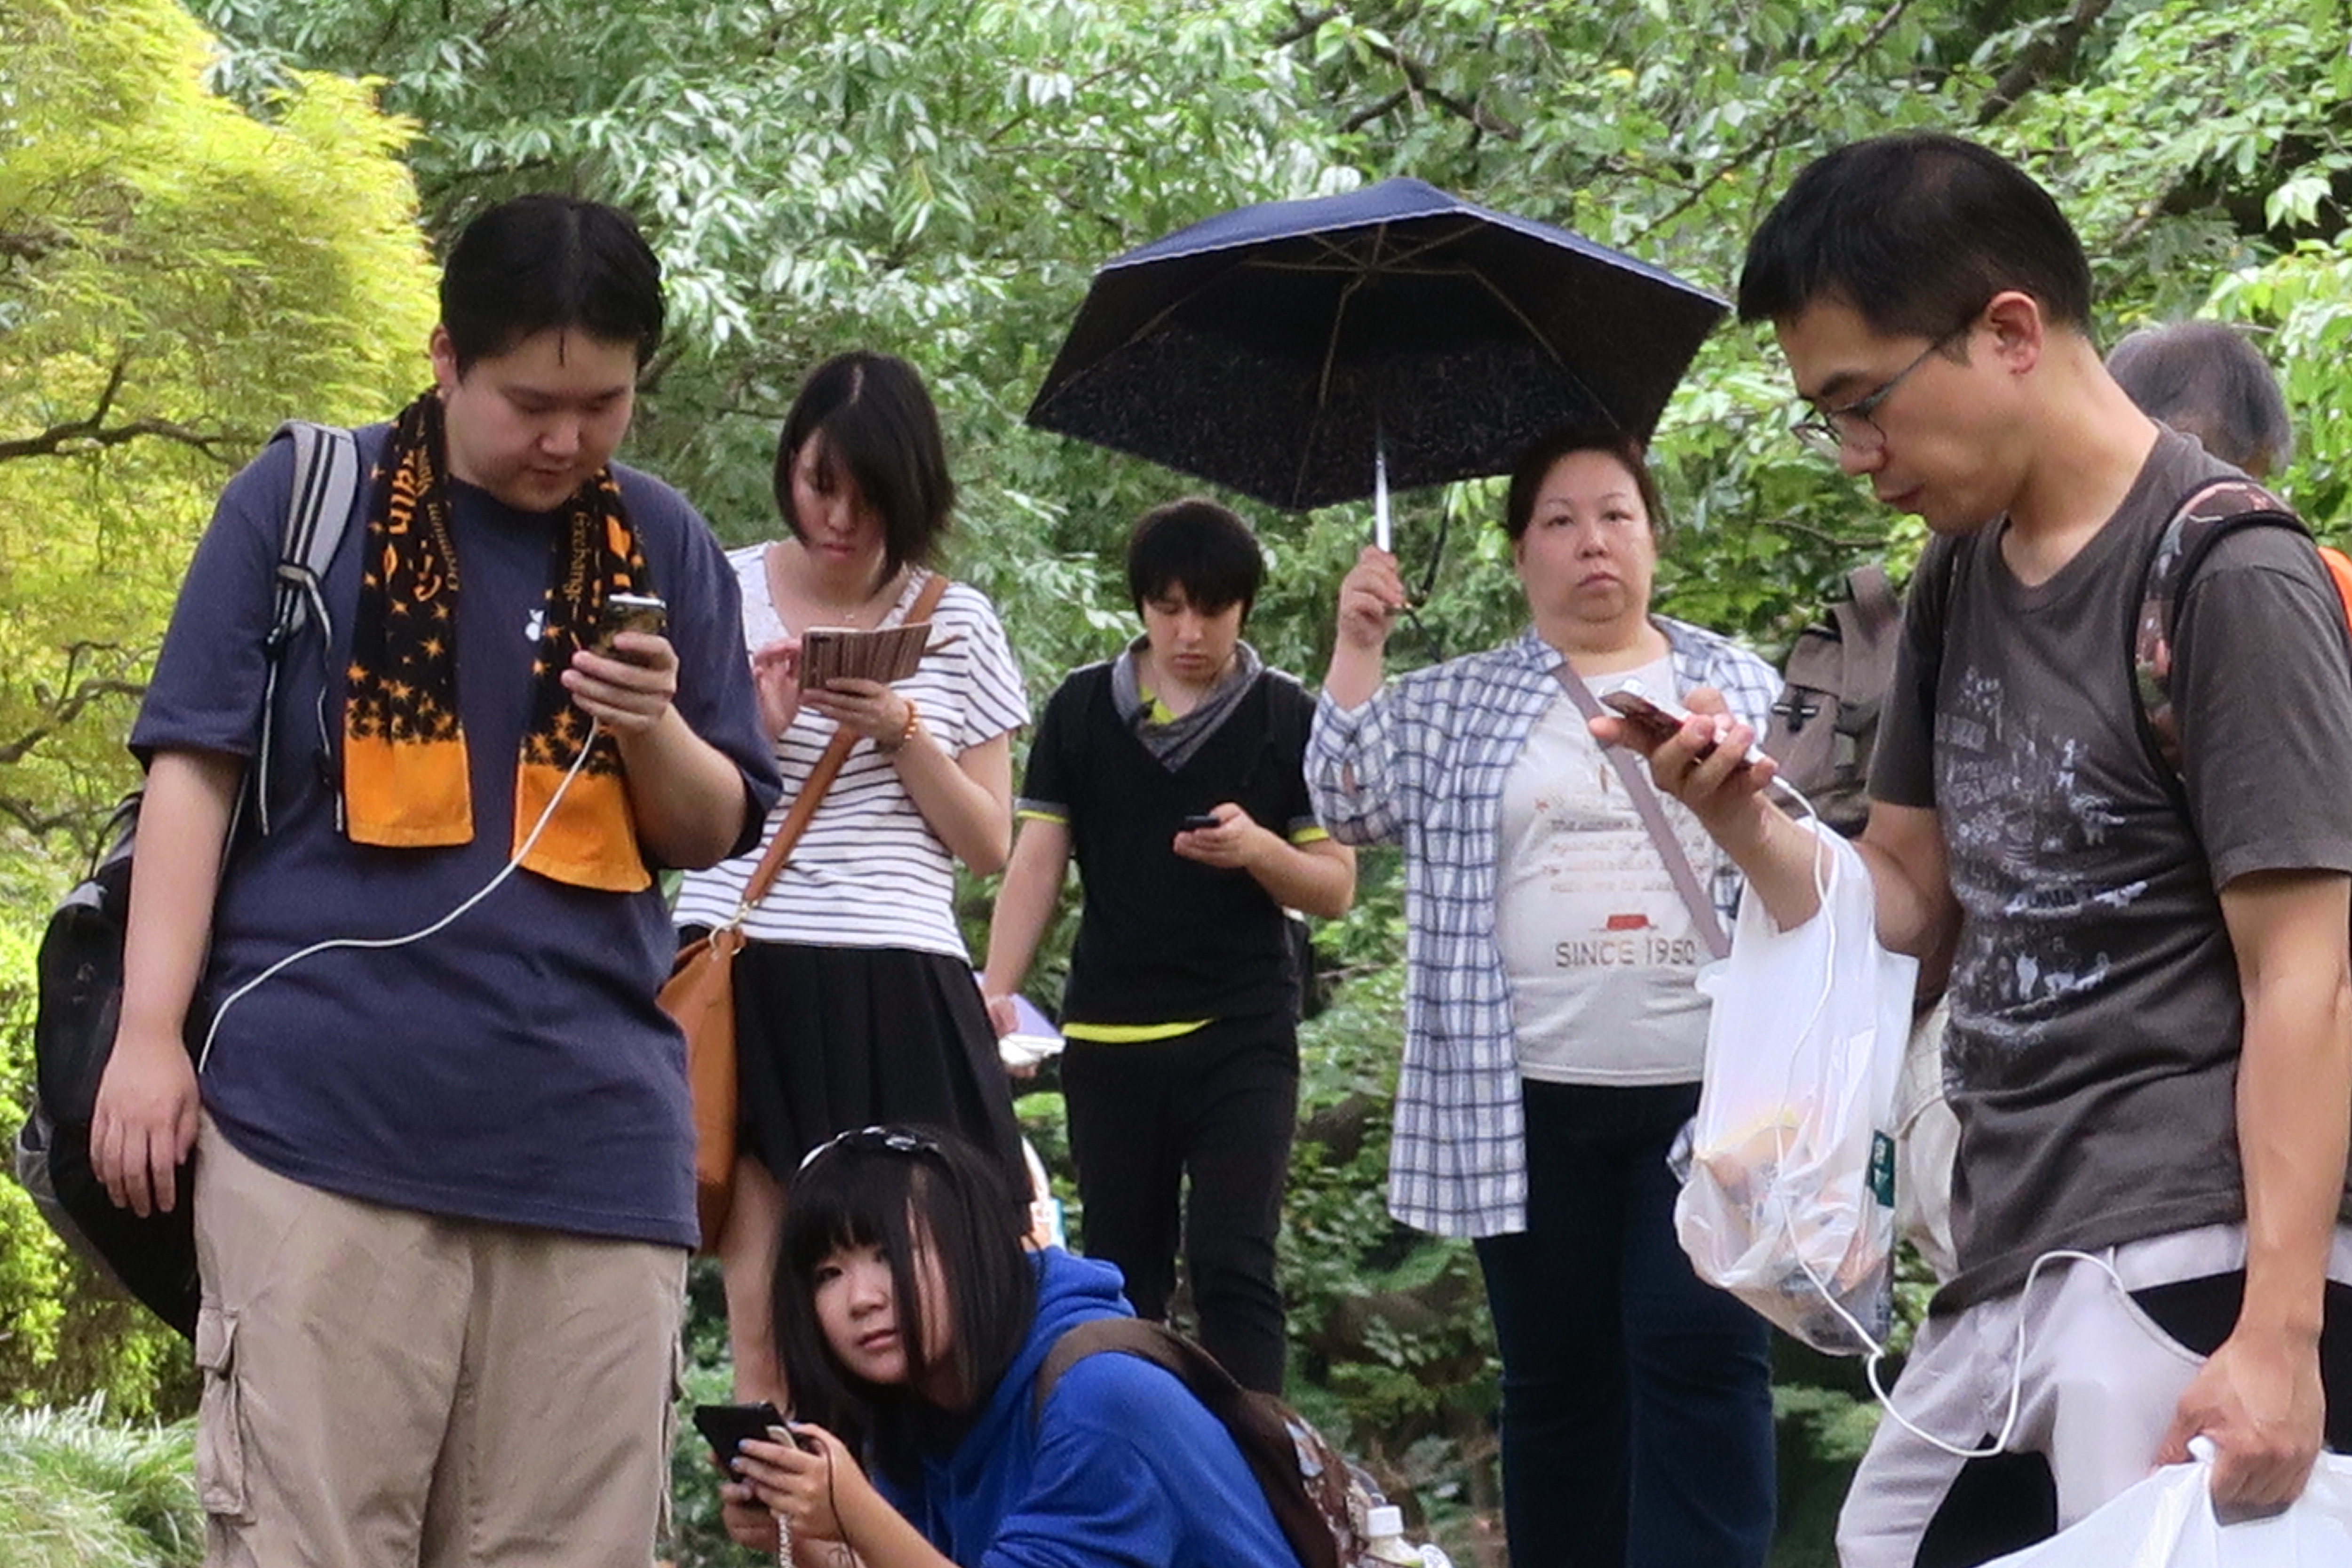 """In this Thursday, June 28, 2016 photo, Pokemon hunters crowd under a green canopy with their mobile phones as they play """"Pokemon Go"""" in the Shinjuku Gyoen National Garden in Tokyo. Japanese Olympic gymnast Kohei Uchimura was stunned to receive a 500,000 y"""